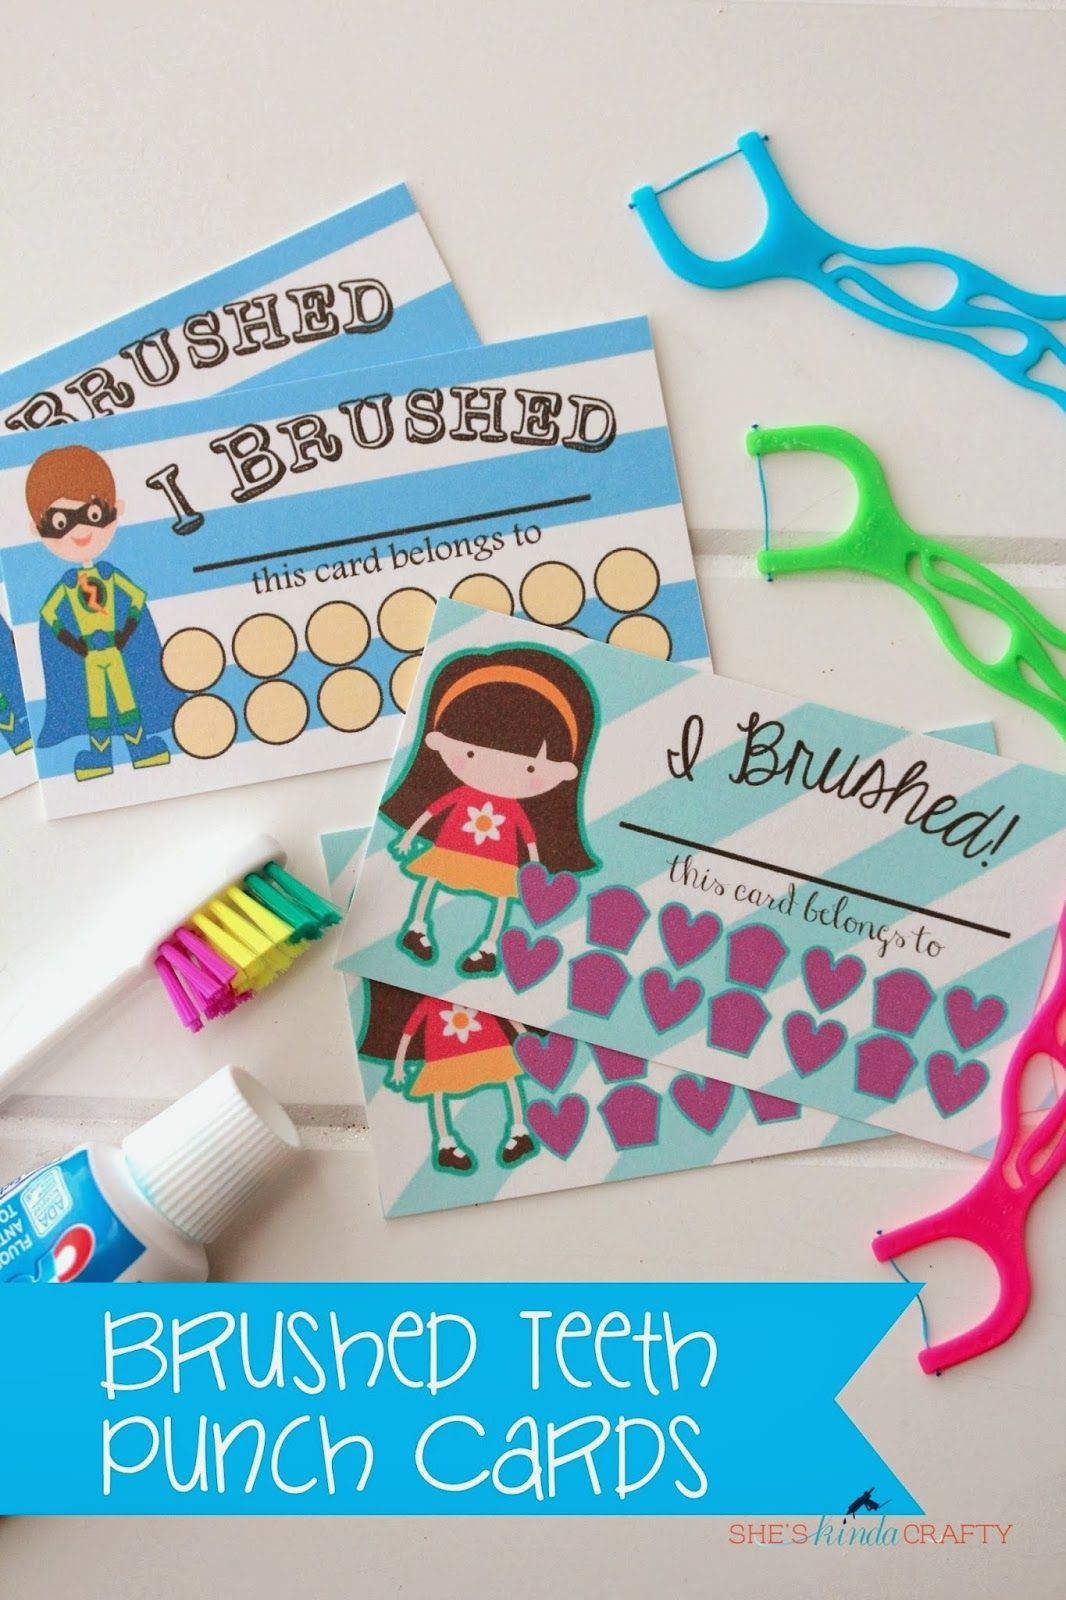 I Brushed My Teeth Punch Cards Free Printable in 2020